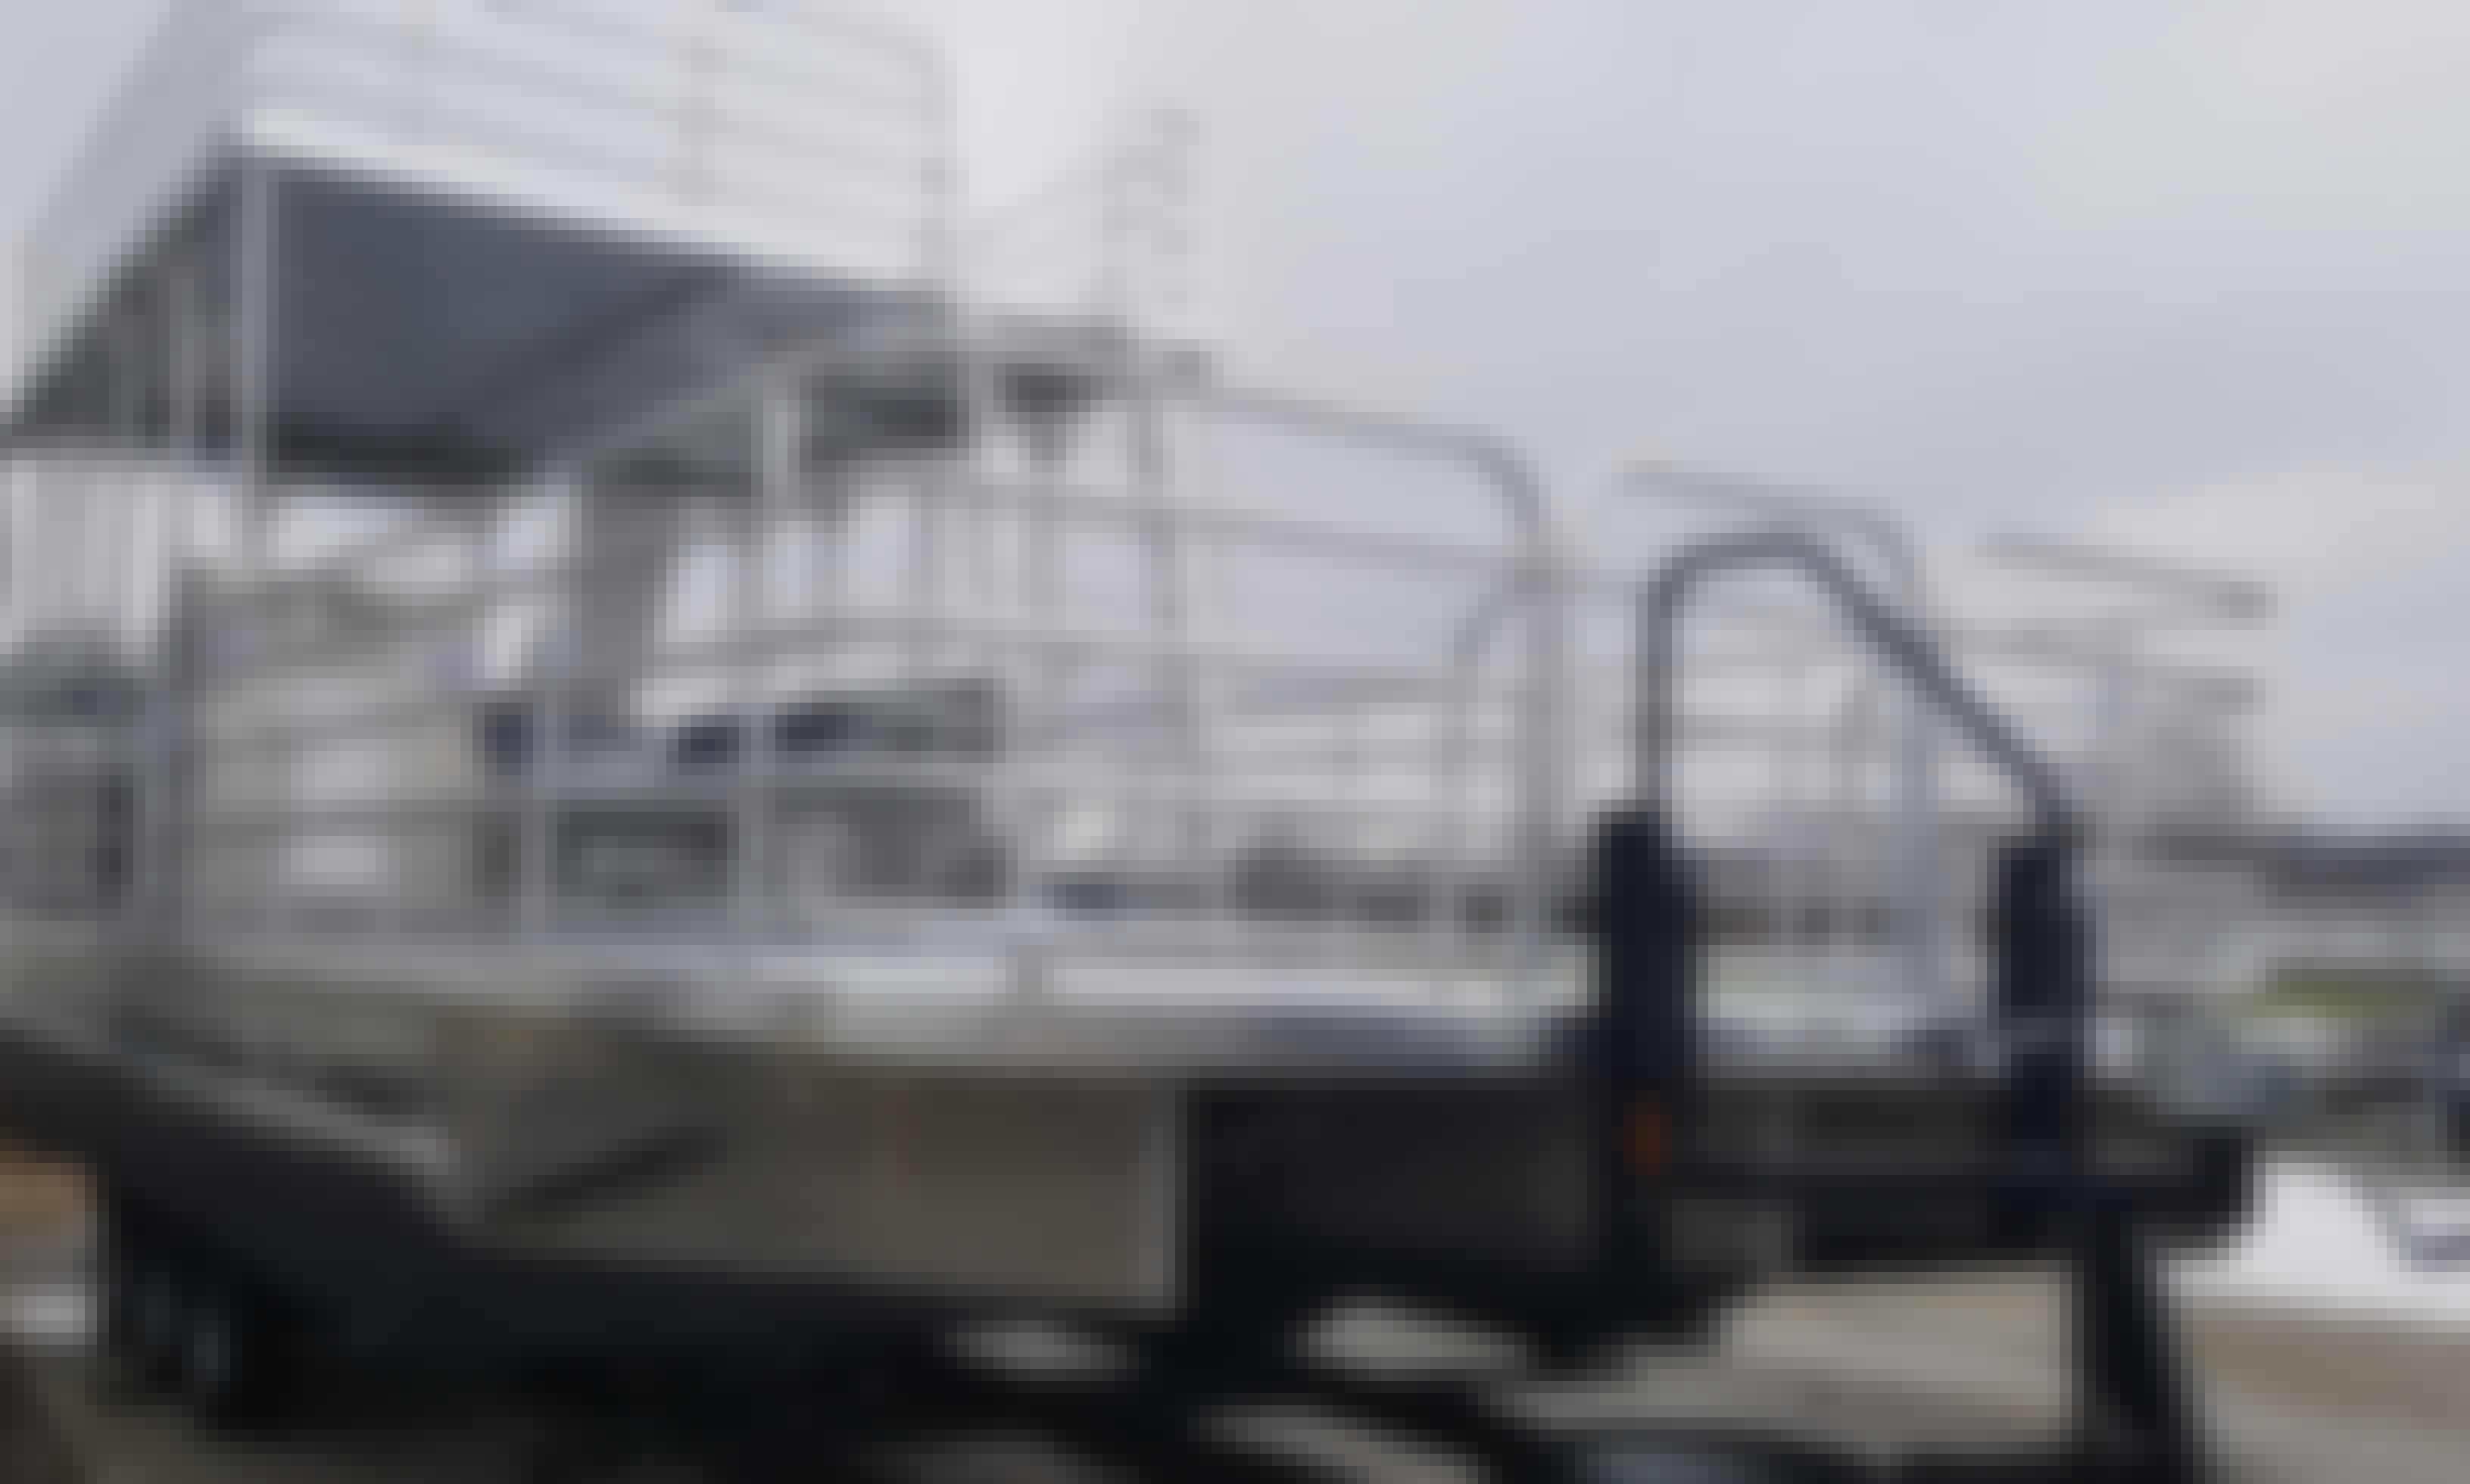 Solidcraft Double Deck 25' Pontoon Boat for Rent at Martinez Lake, AZ